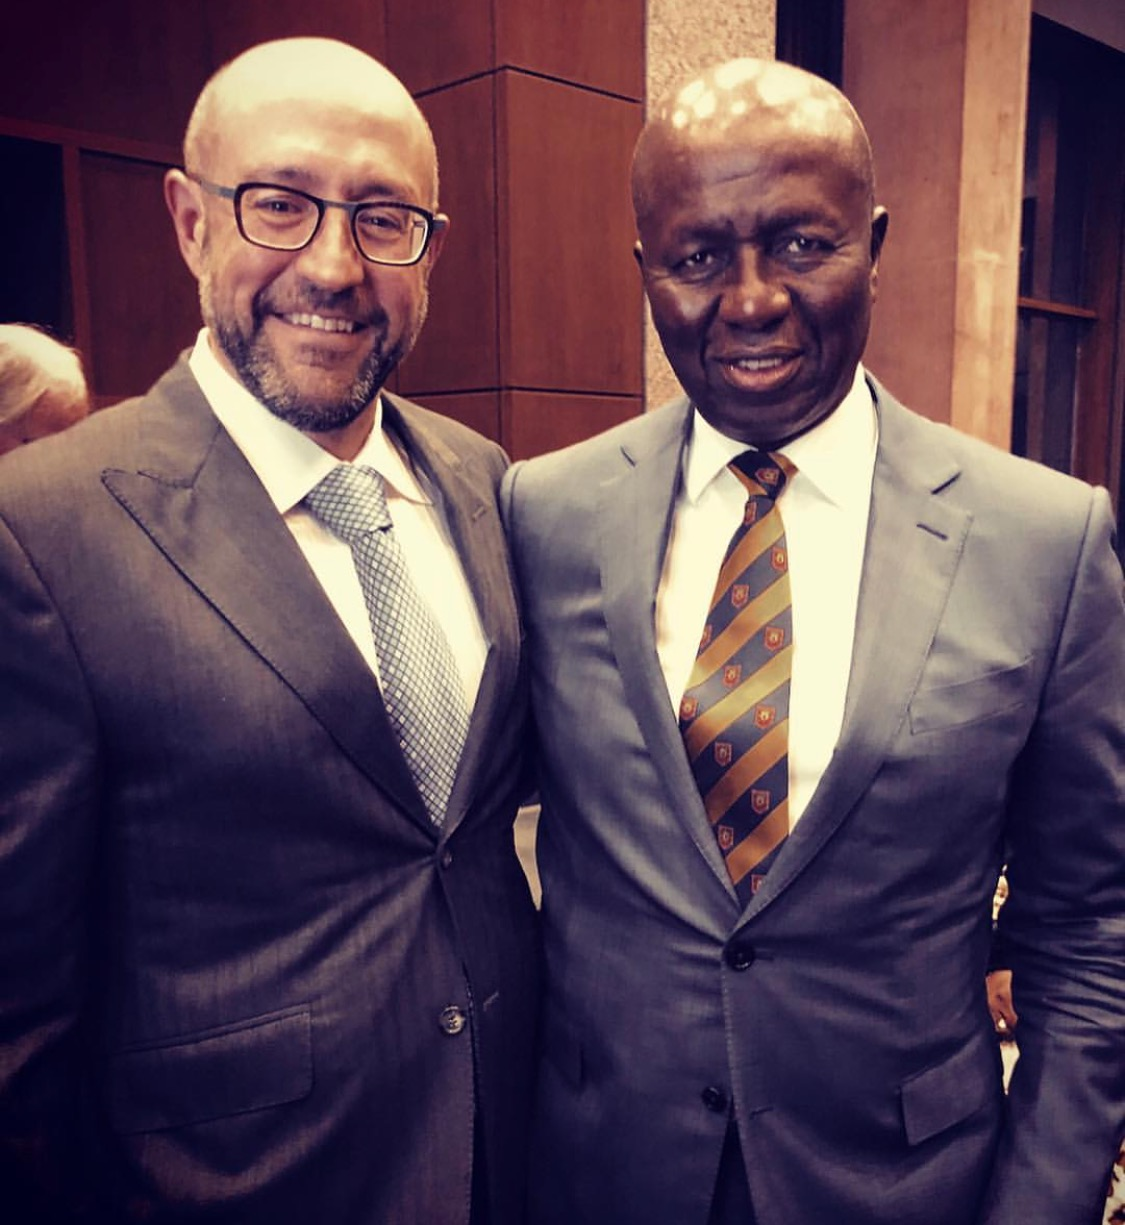 20190205-Jay Rosenzweig With Justice Dikgang Moseneke, former Deputy Chief Justice of South Africa, and cellmate of Nelson Mandela..jpeg